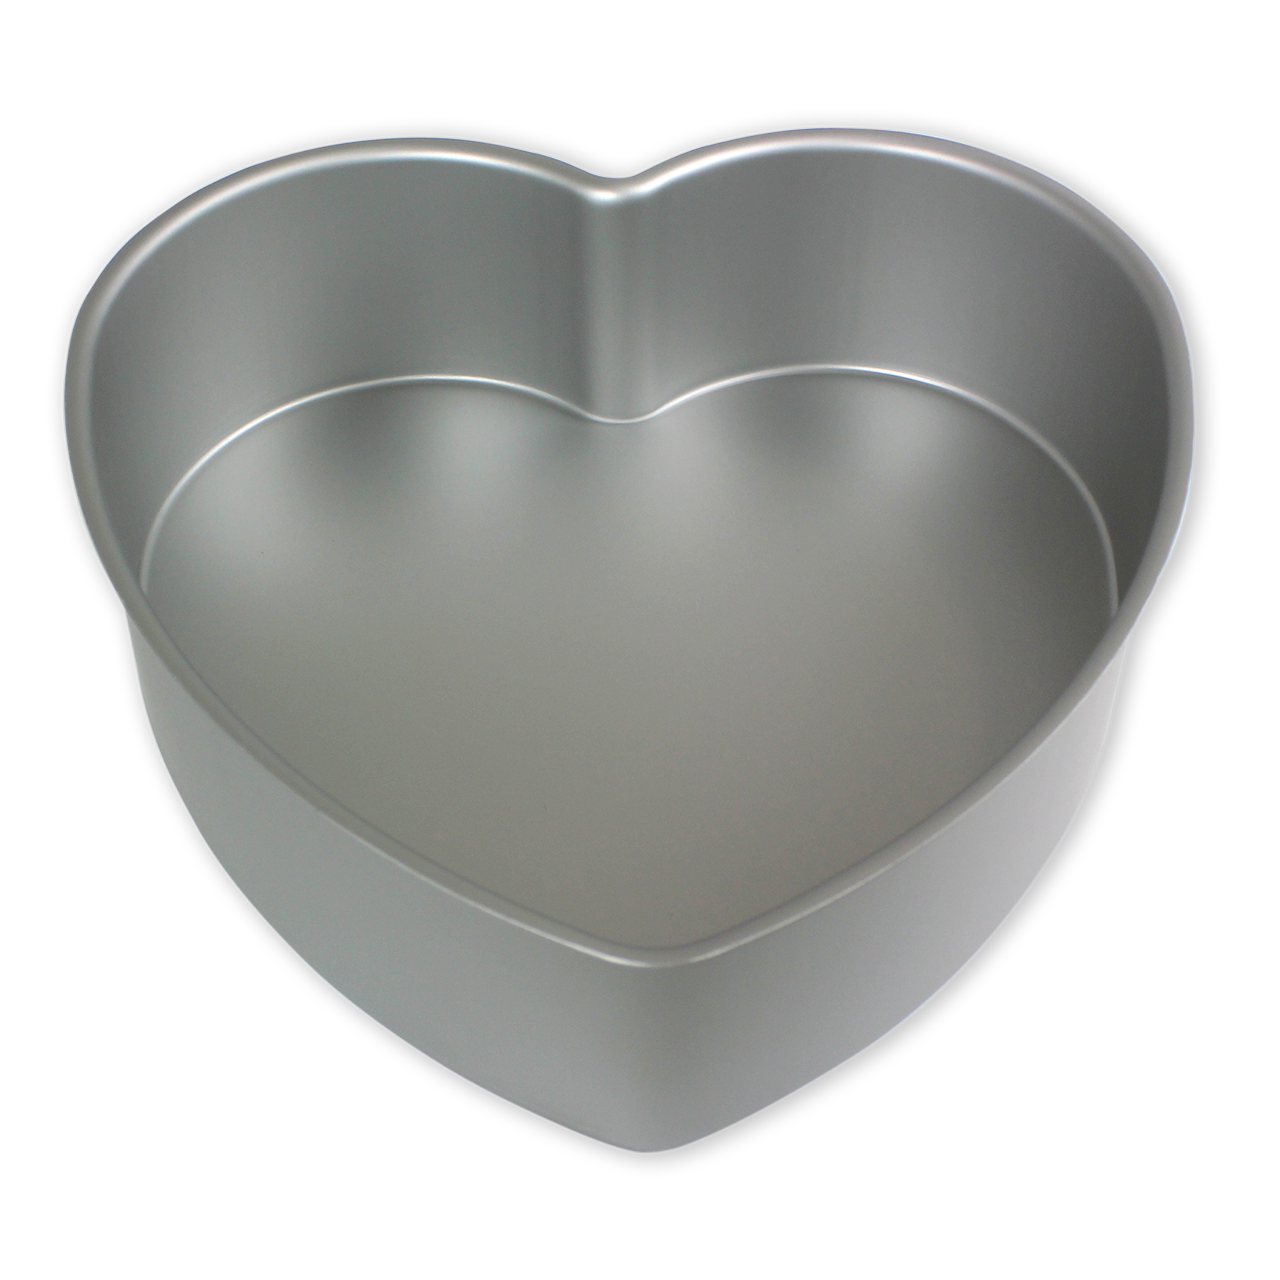 Pme Heart Square Round Shaped Cake Pan Tin Mould Baking 3